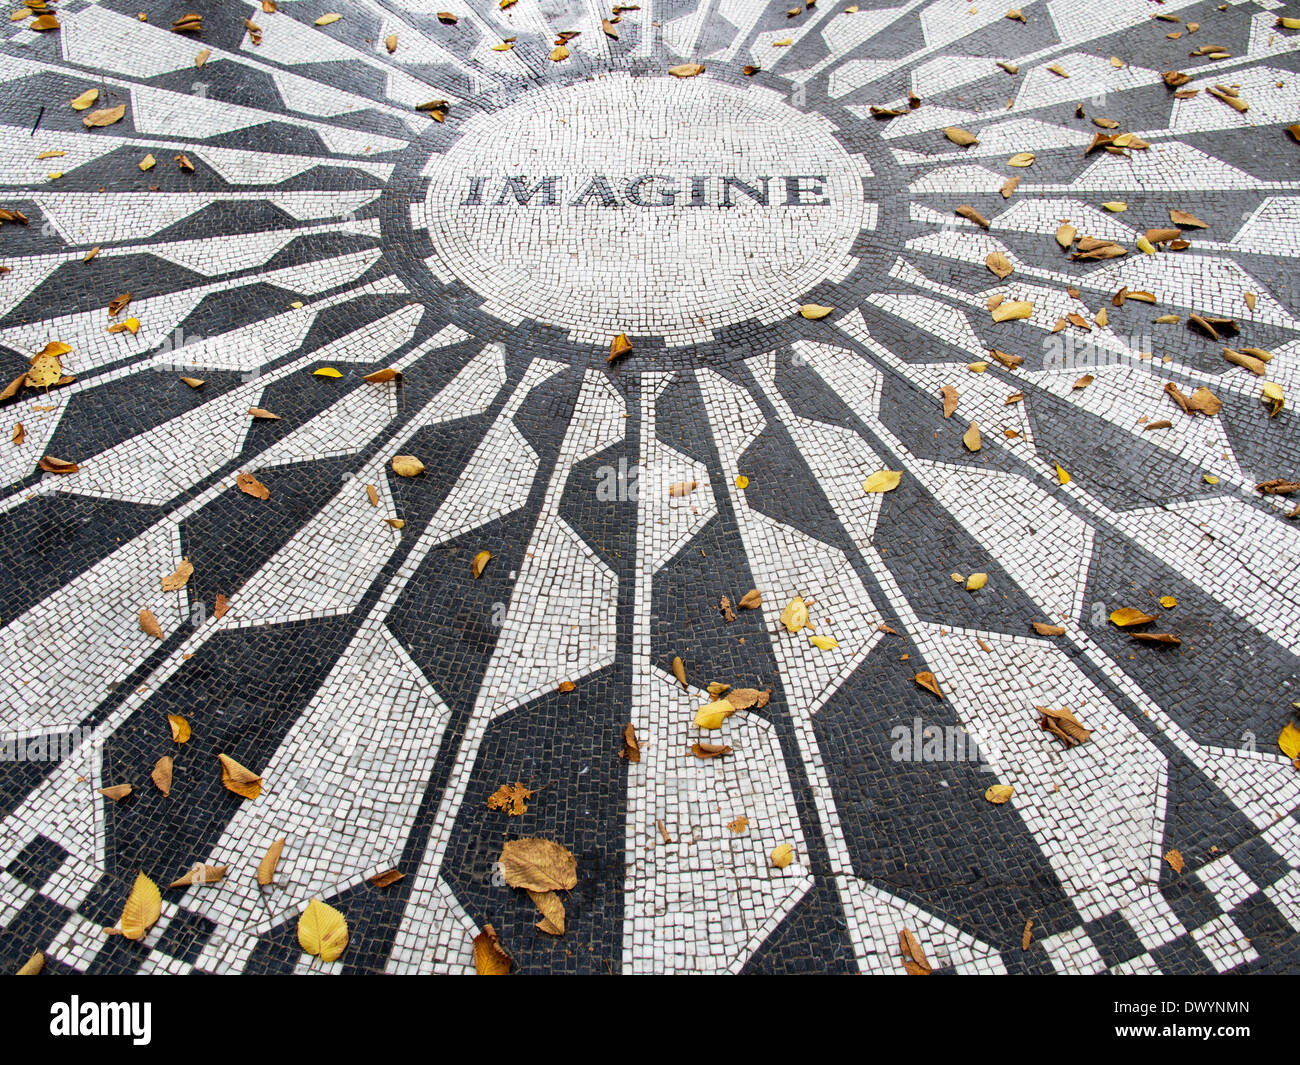 Memorial to John Lennon in Strawberry Fields in Fall, Central Park New York USA 3 - Stock Image